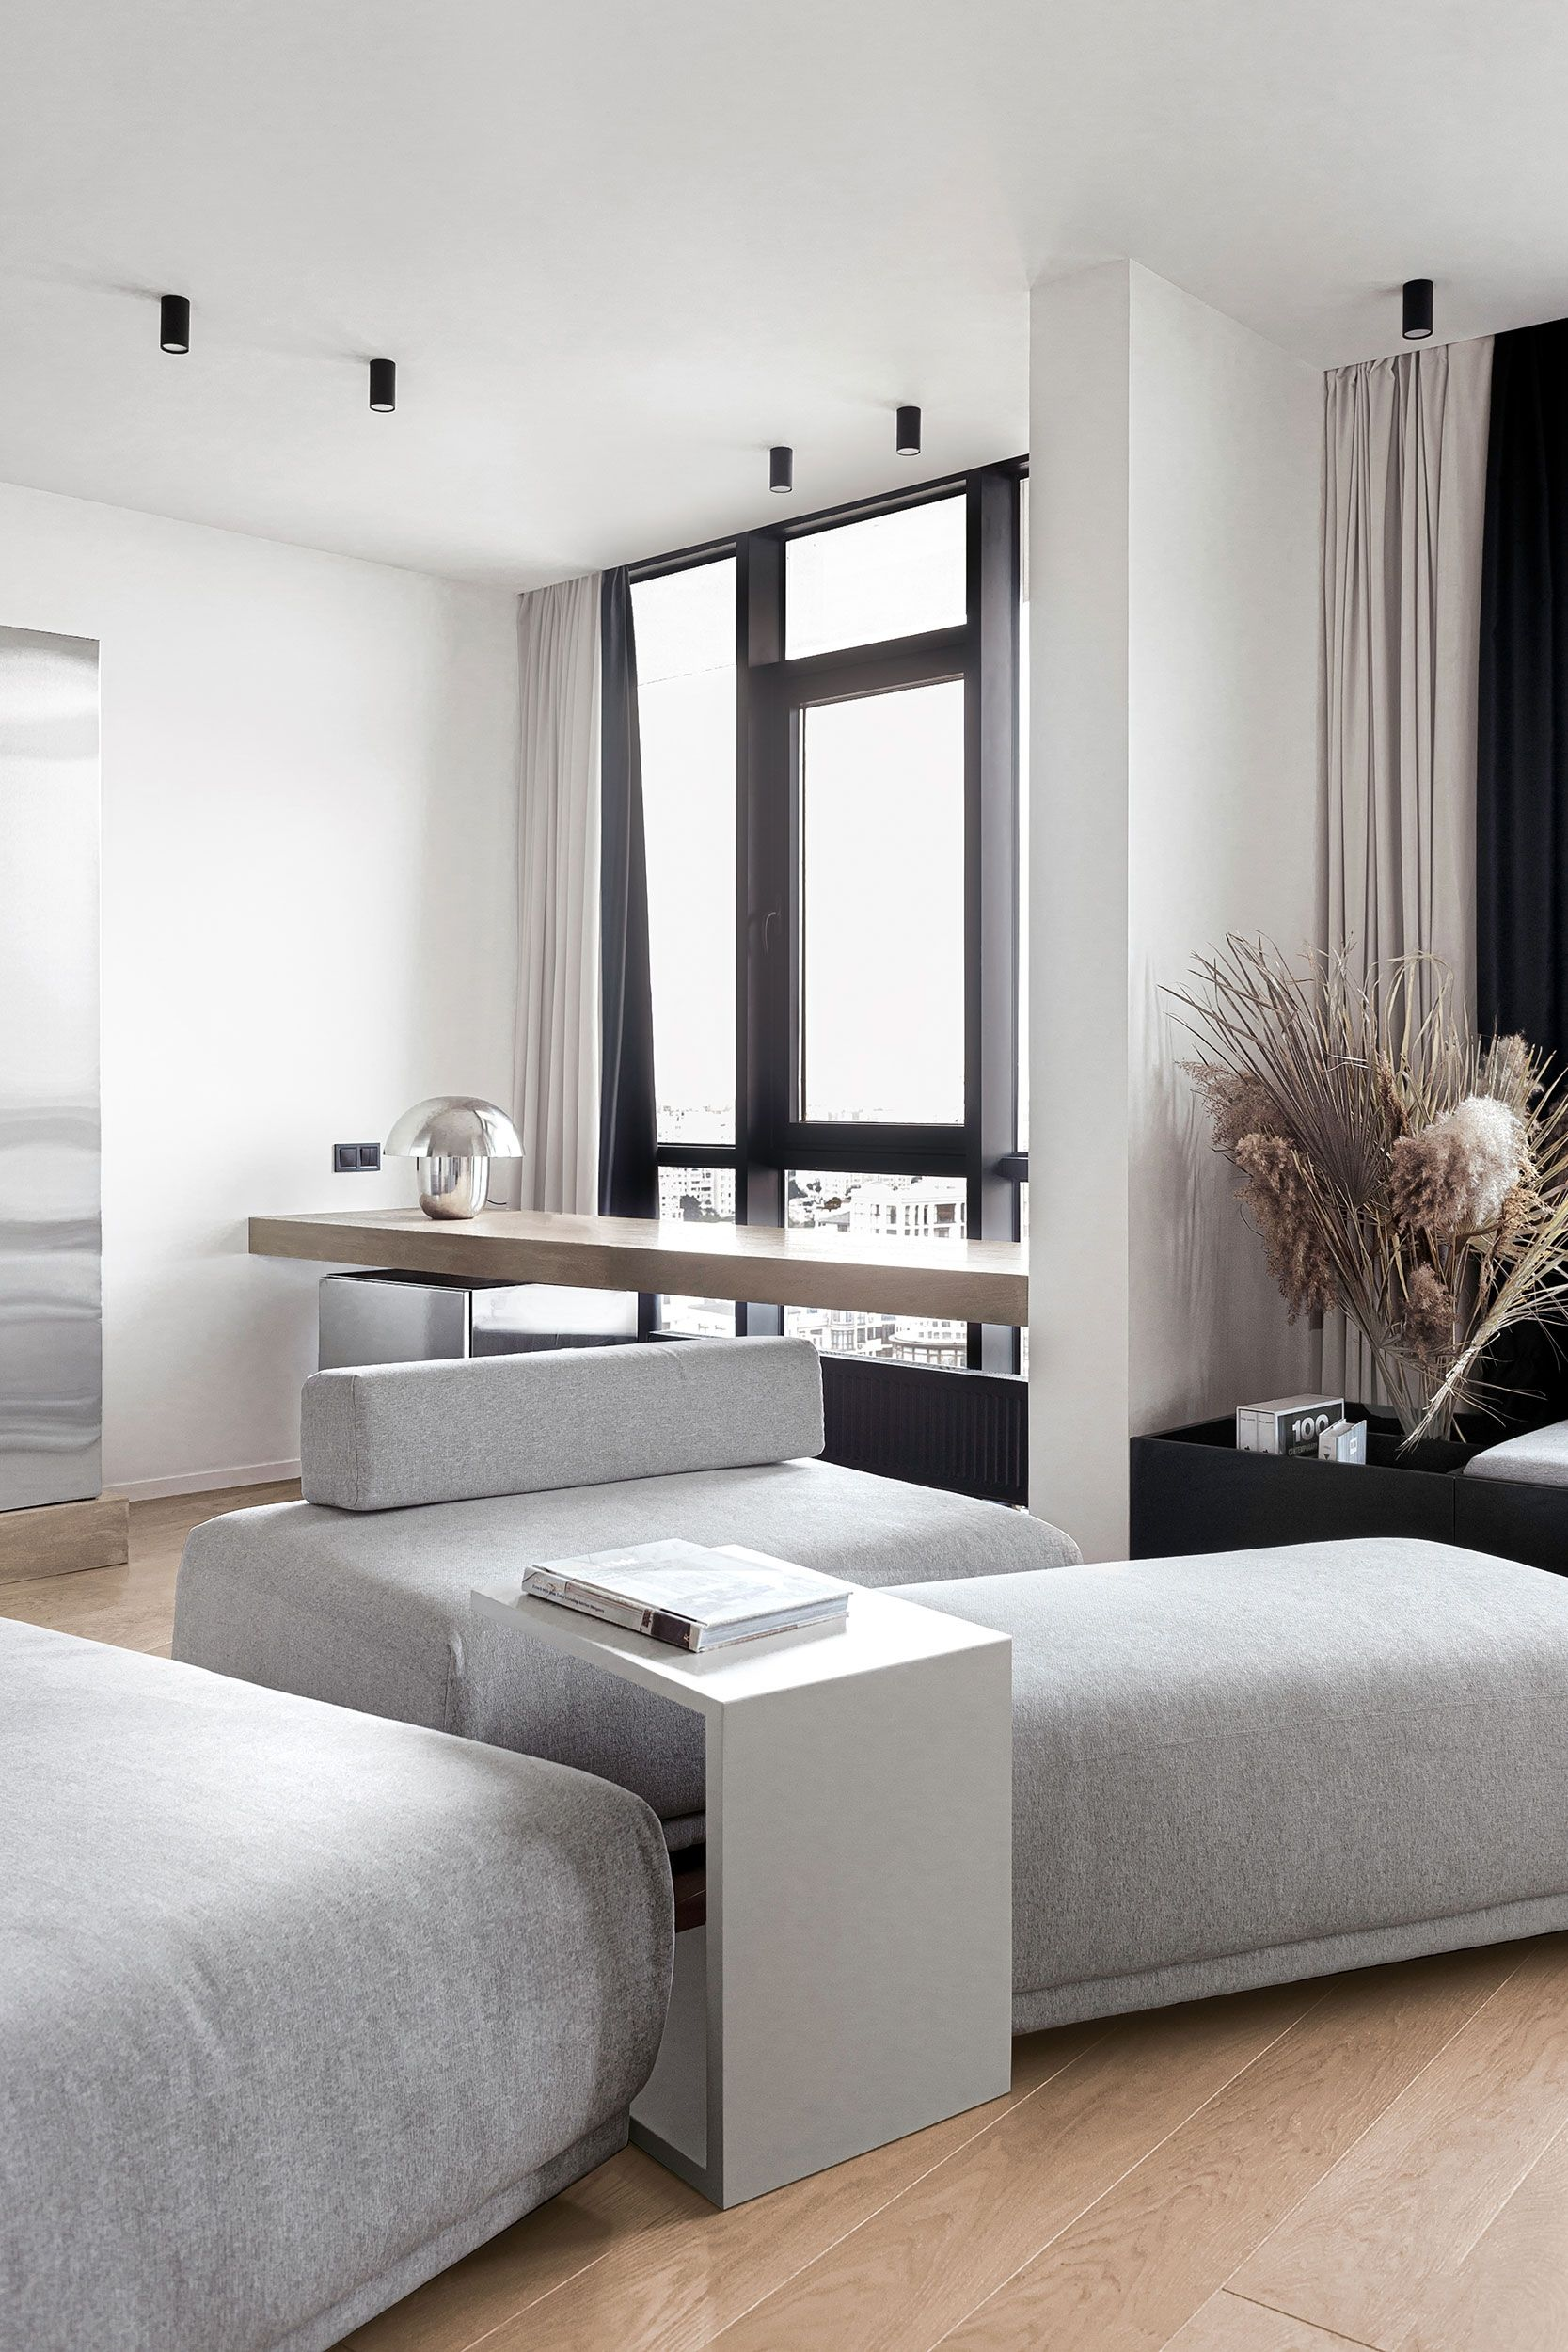 Simplicity and functionalism were the two main wishes of the client for this Hehuezska apartment. Our task was to use a minimum of decor and different types of finishing materials, making the apartment the most convenient for the client's lifestyle. #apartments #apartmentdesign #modernspaces